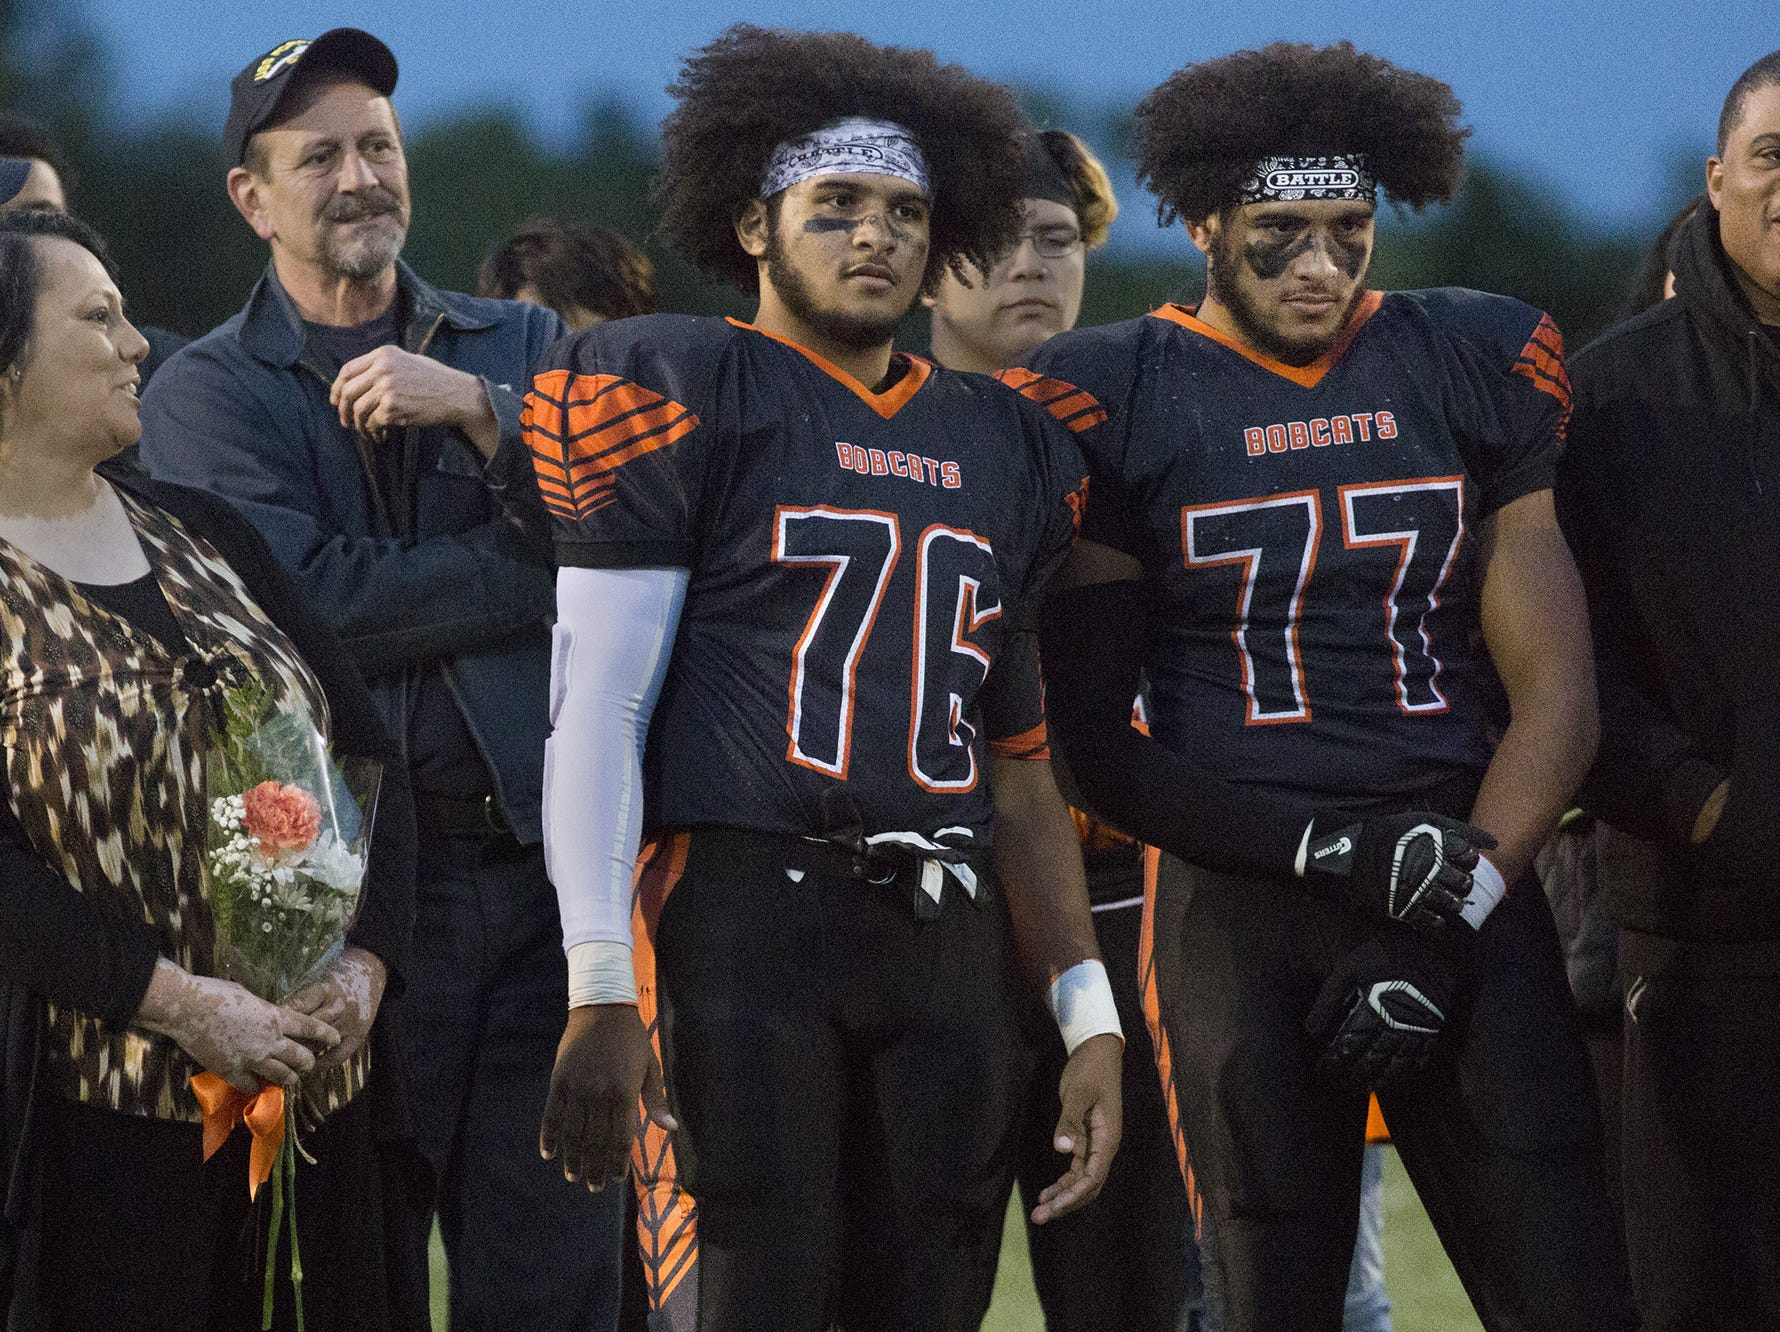 Northeastern High School honors members of the senior class prior to the game. York High defeats Northeastern 32-28 in football at Northeastern High School in Manchester, Friday, October 19, 2018.